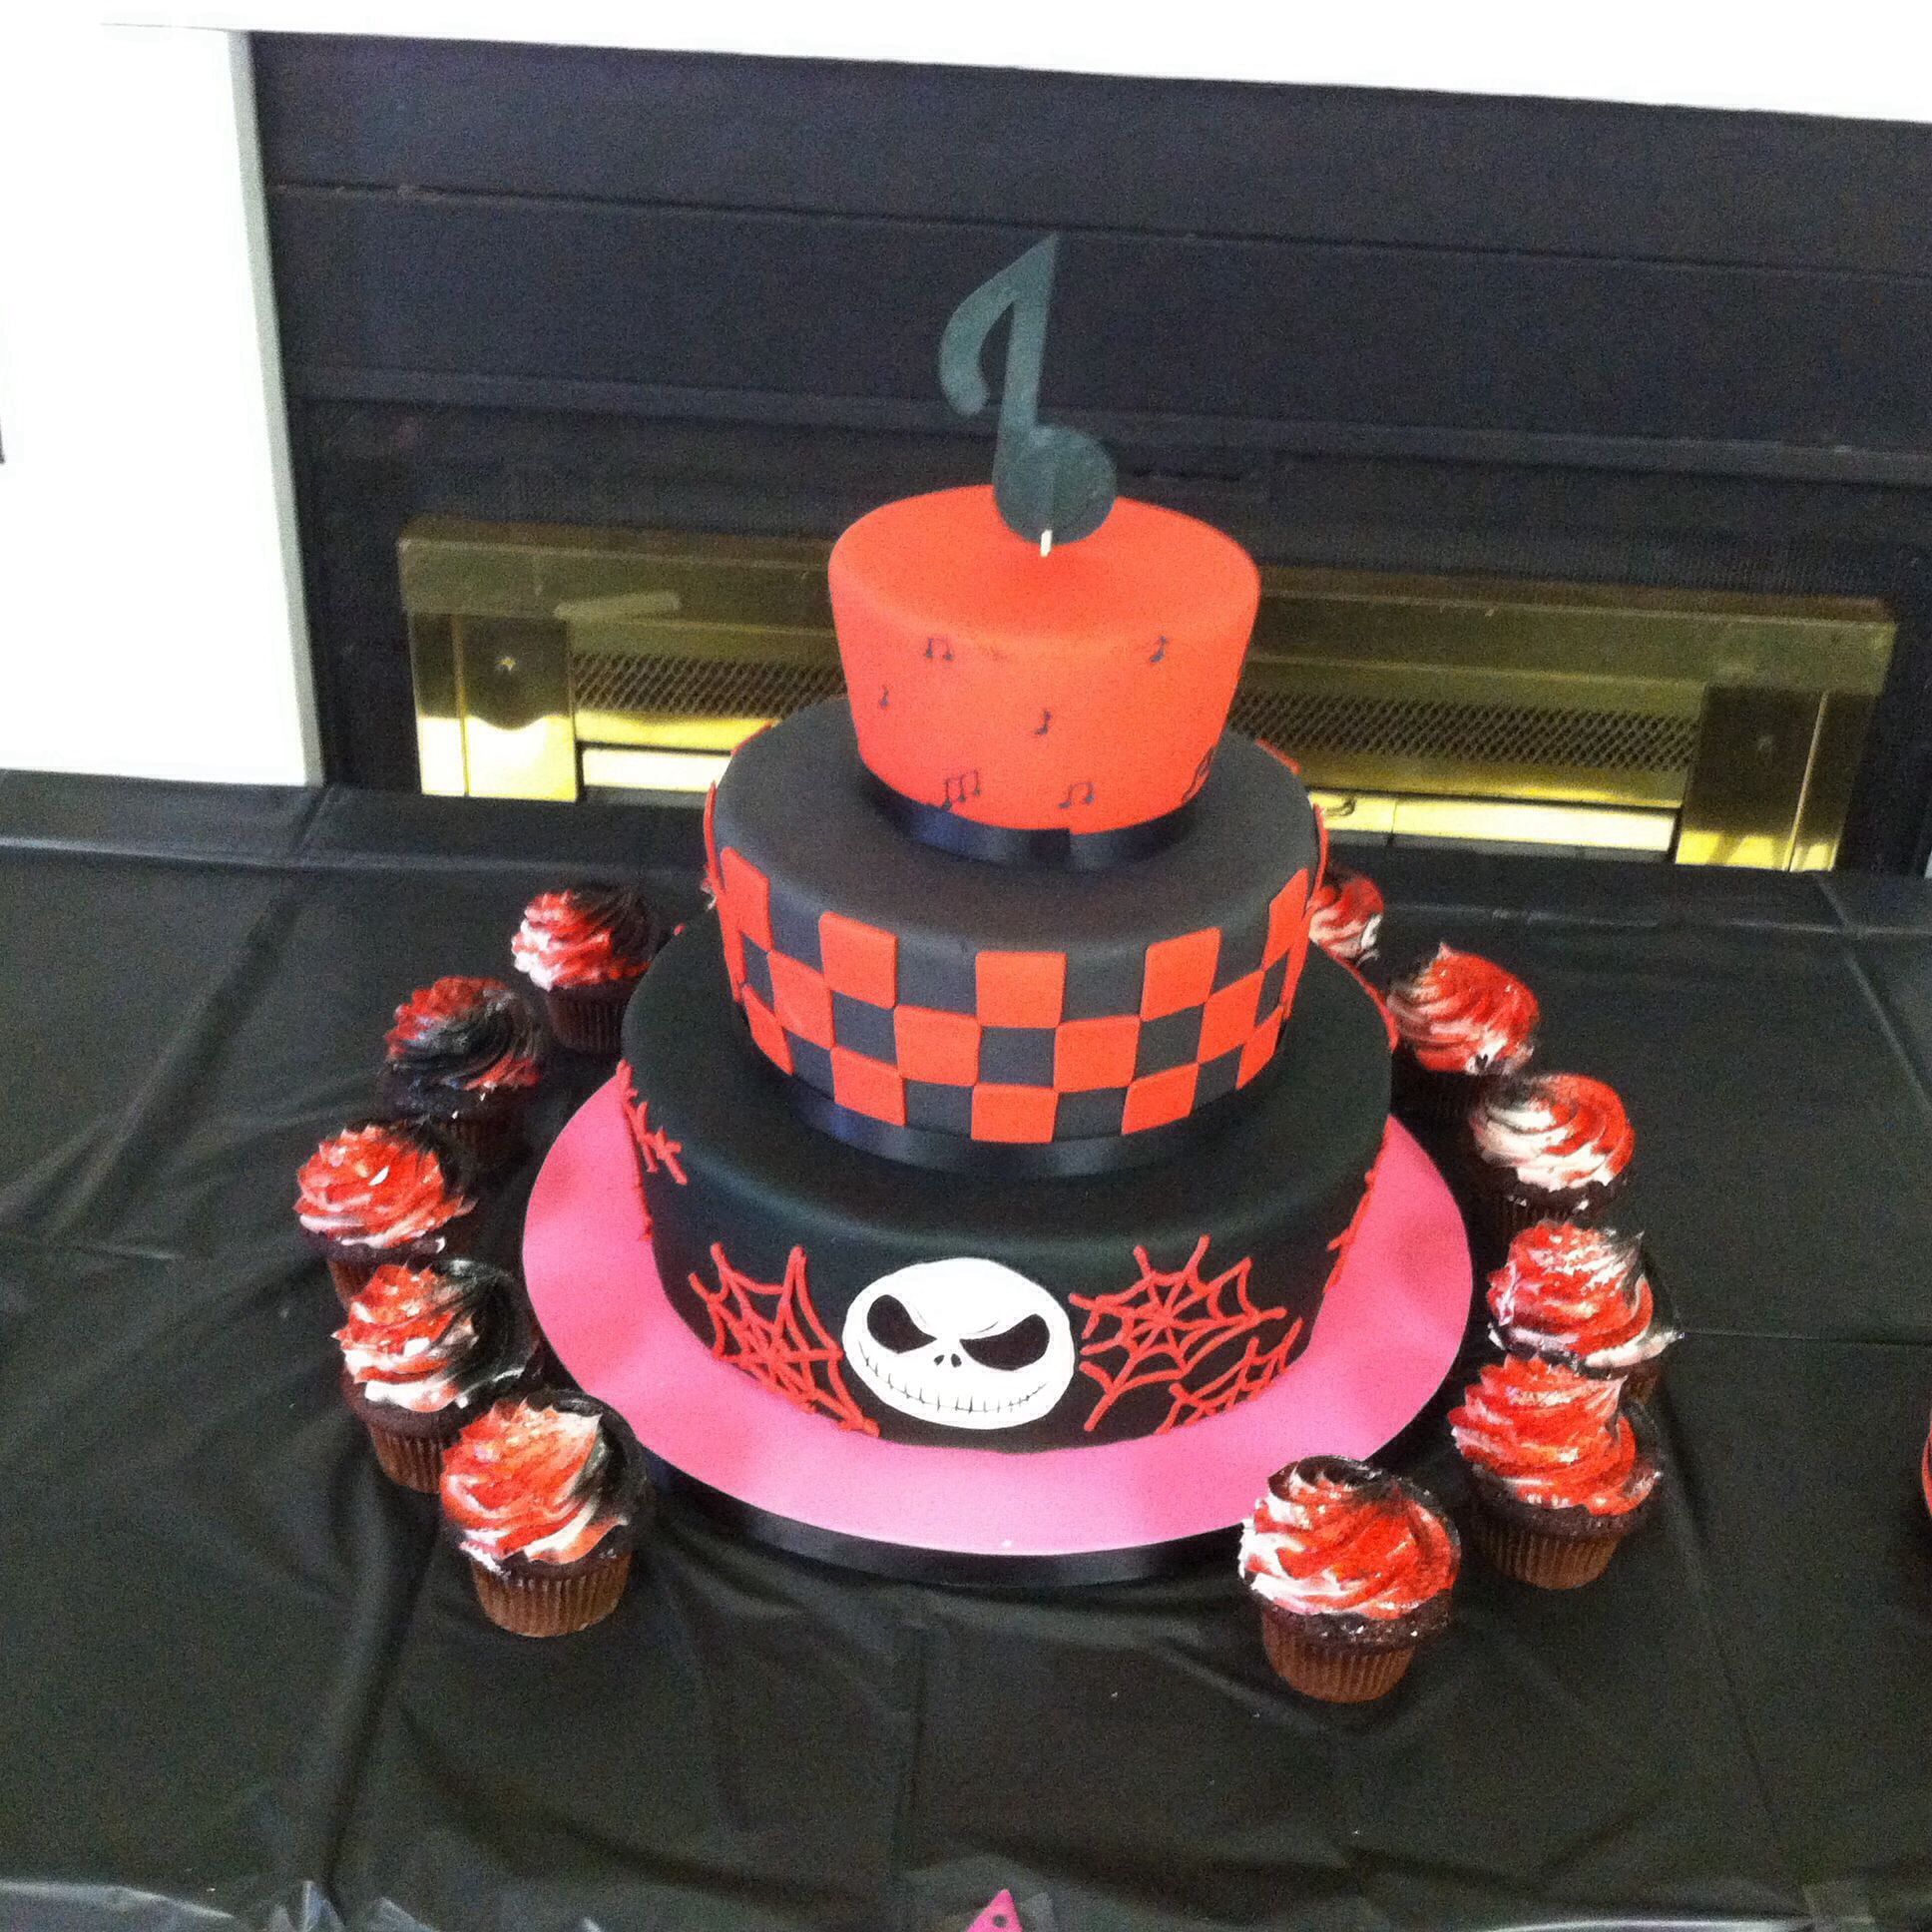 Sweet 16 party cake done by CHARM CITY CAKES!